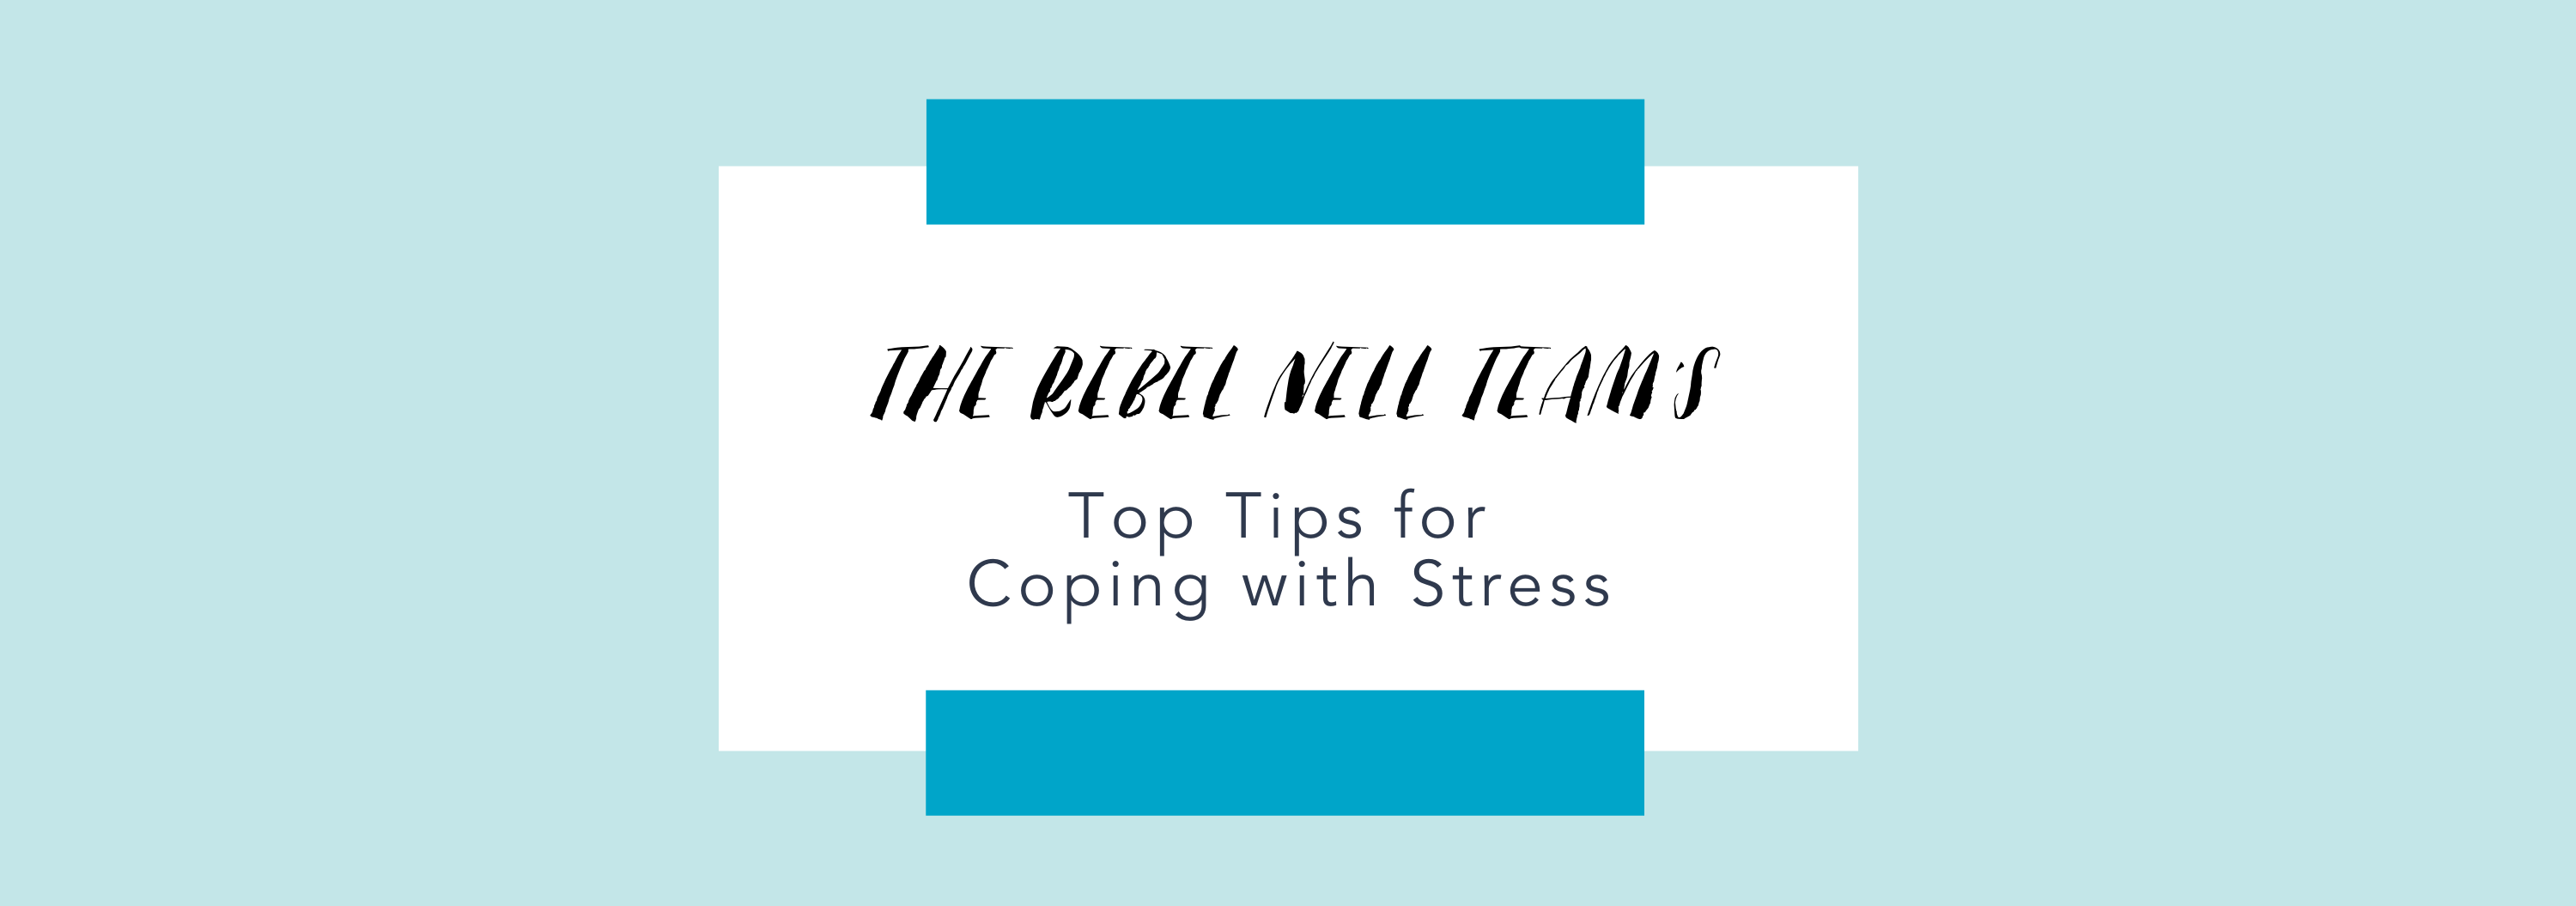 Rebel Nell Top Tips for Coping with Stress